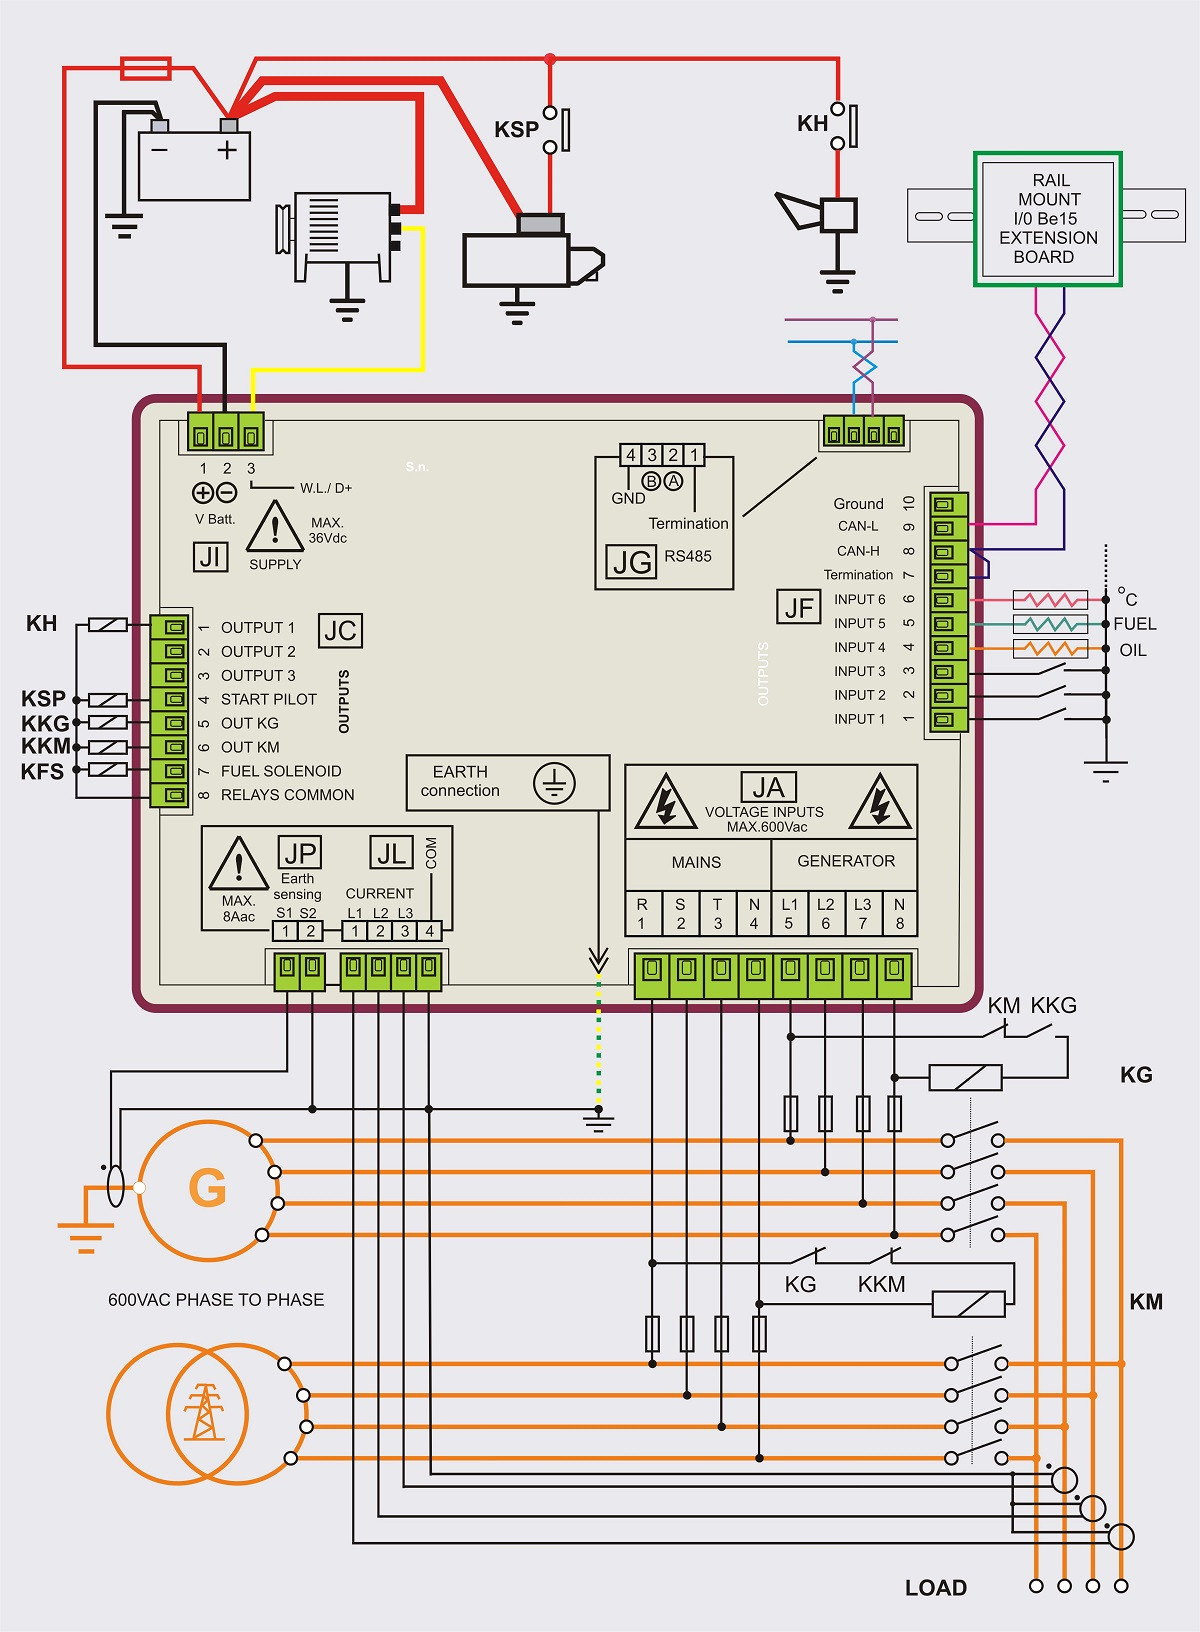 generac wiring diagram Collection-Generac 100 Amp Automatic Transfer Switch Wiring Diagram 16 15-b